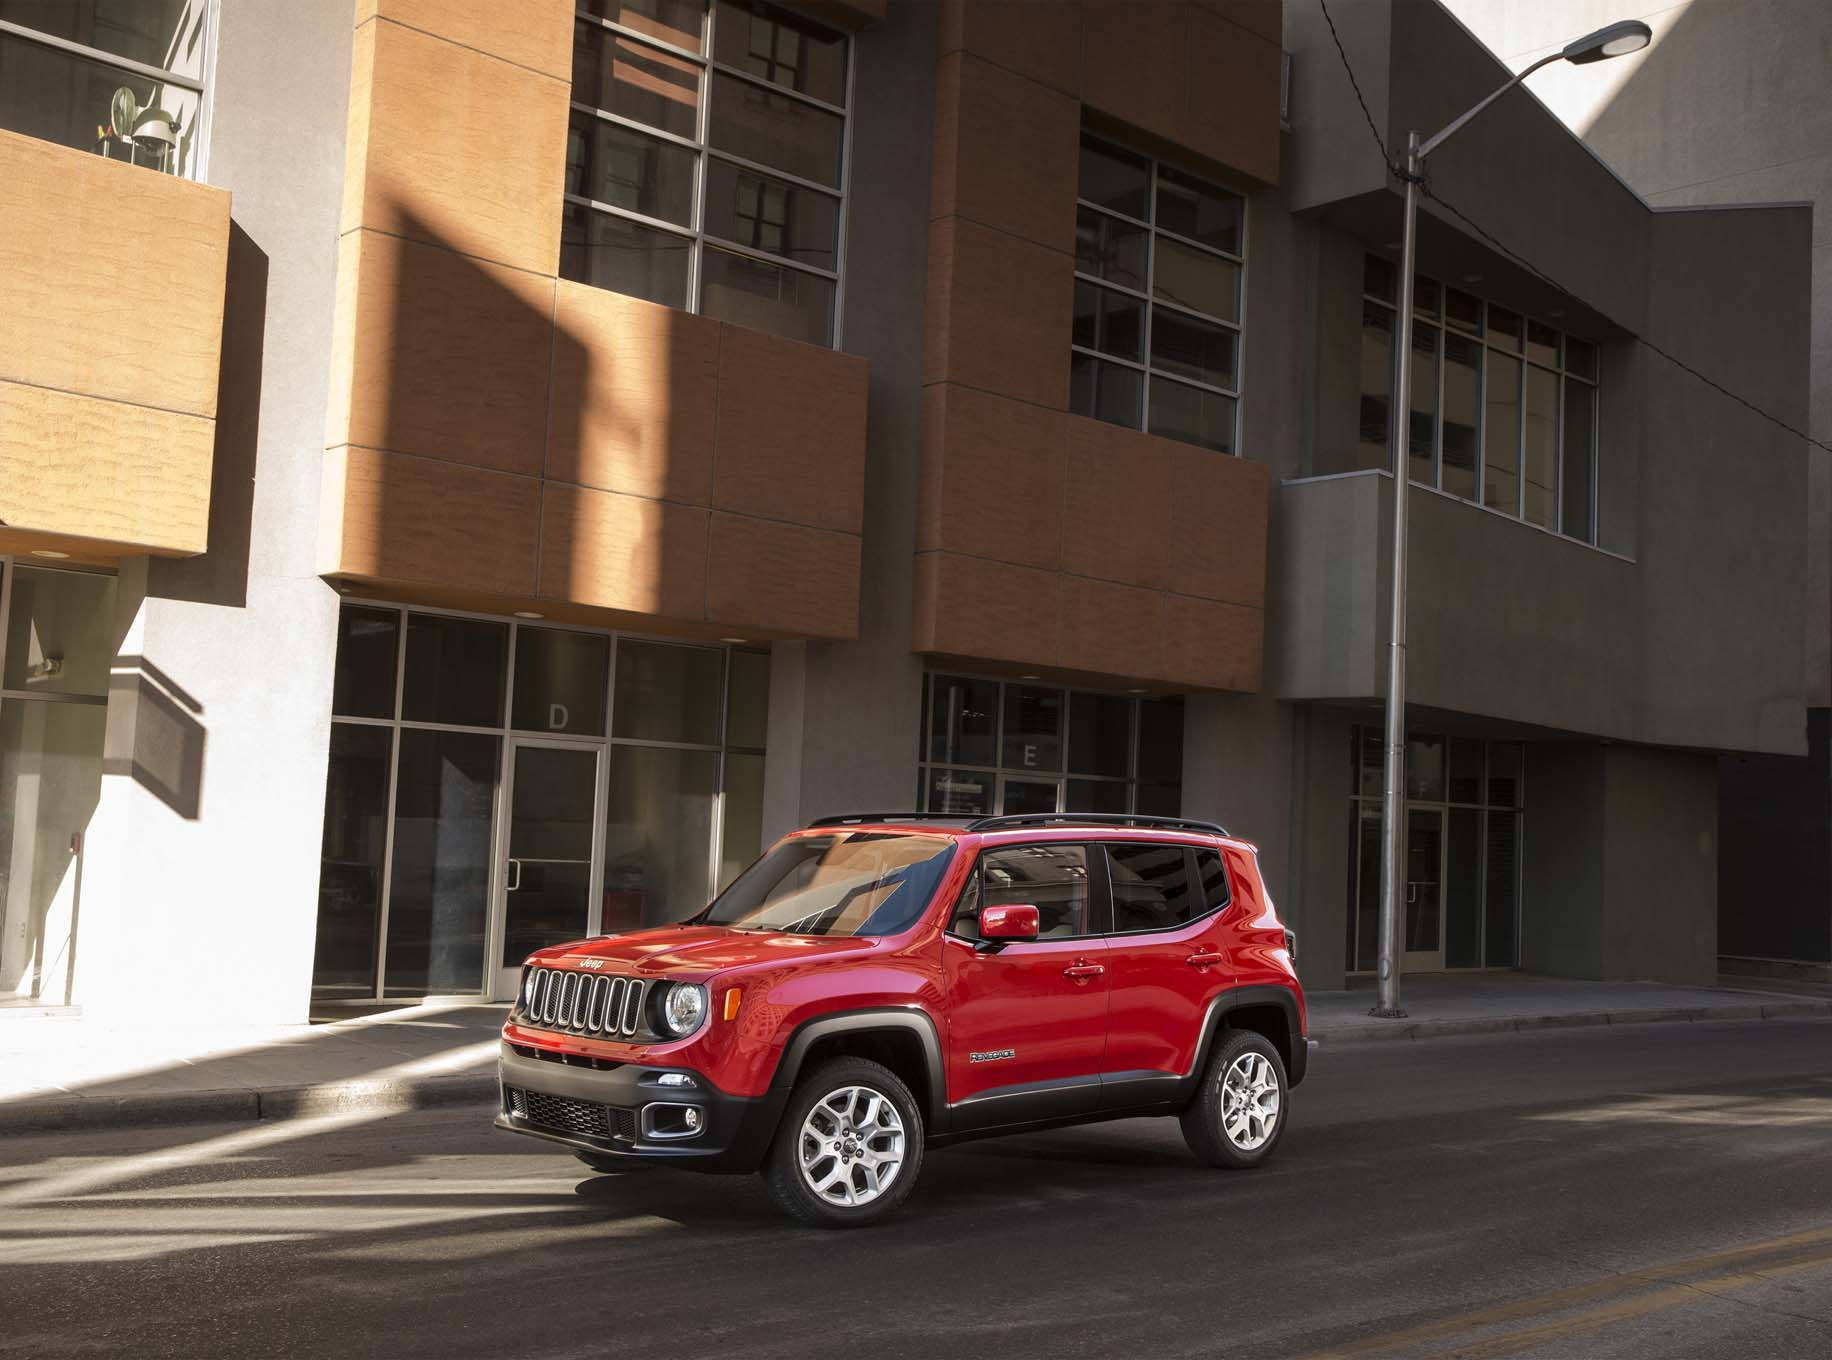 2015 Jeep Renegade Latitude front three quarter 02